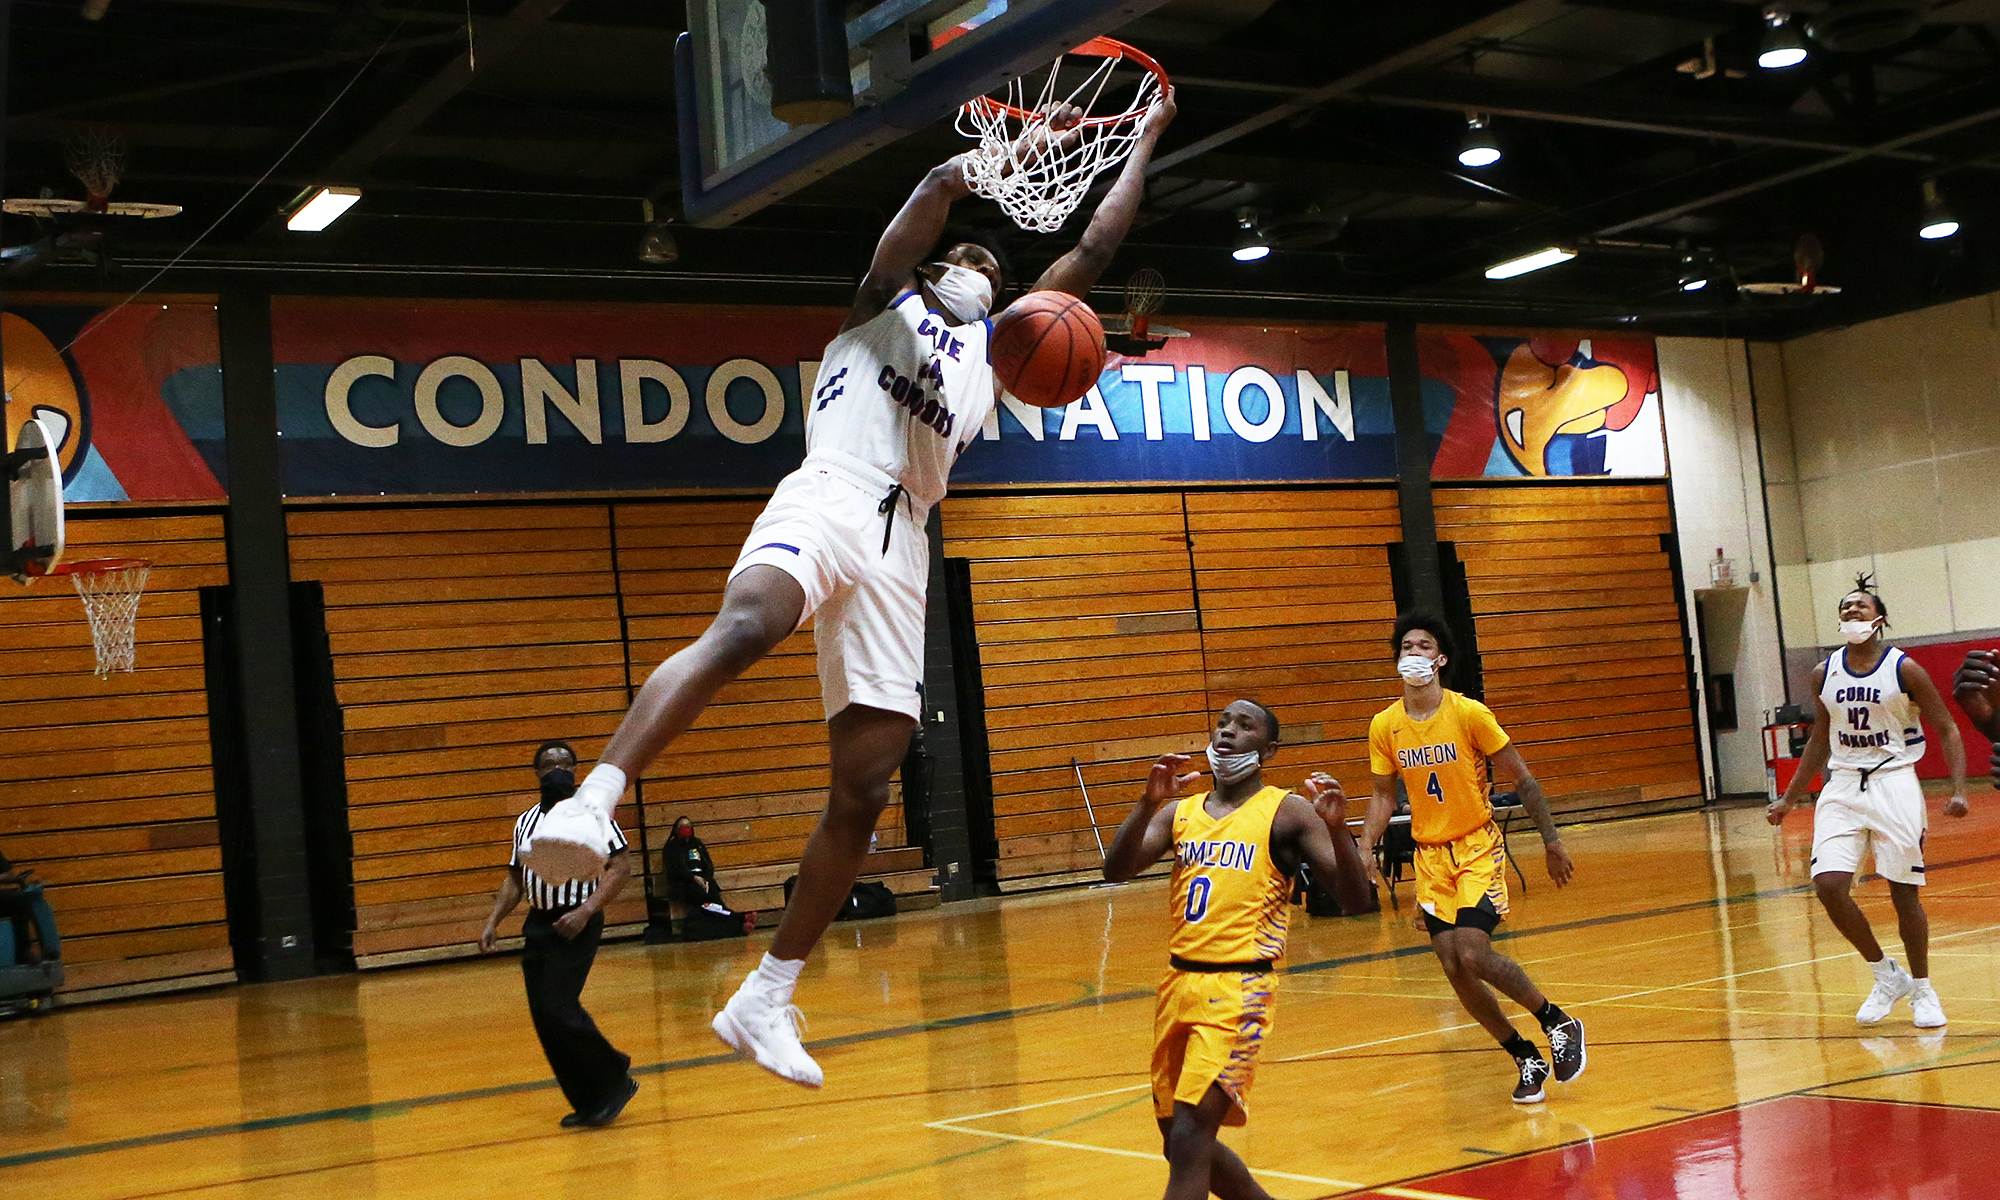 Curie's Jermell Grigsby dunks as the Condors host Simeon.